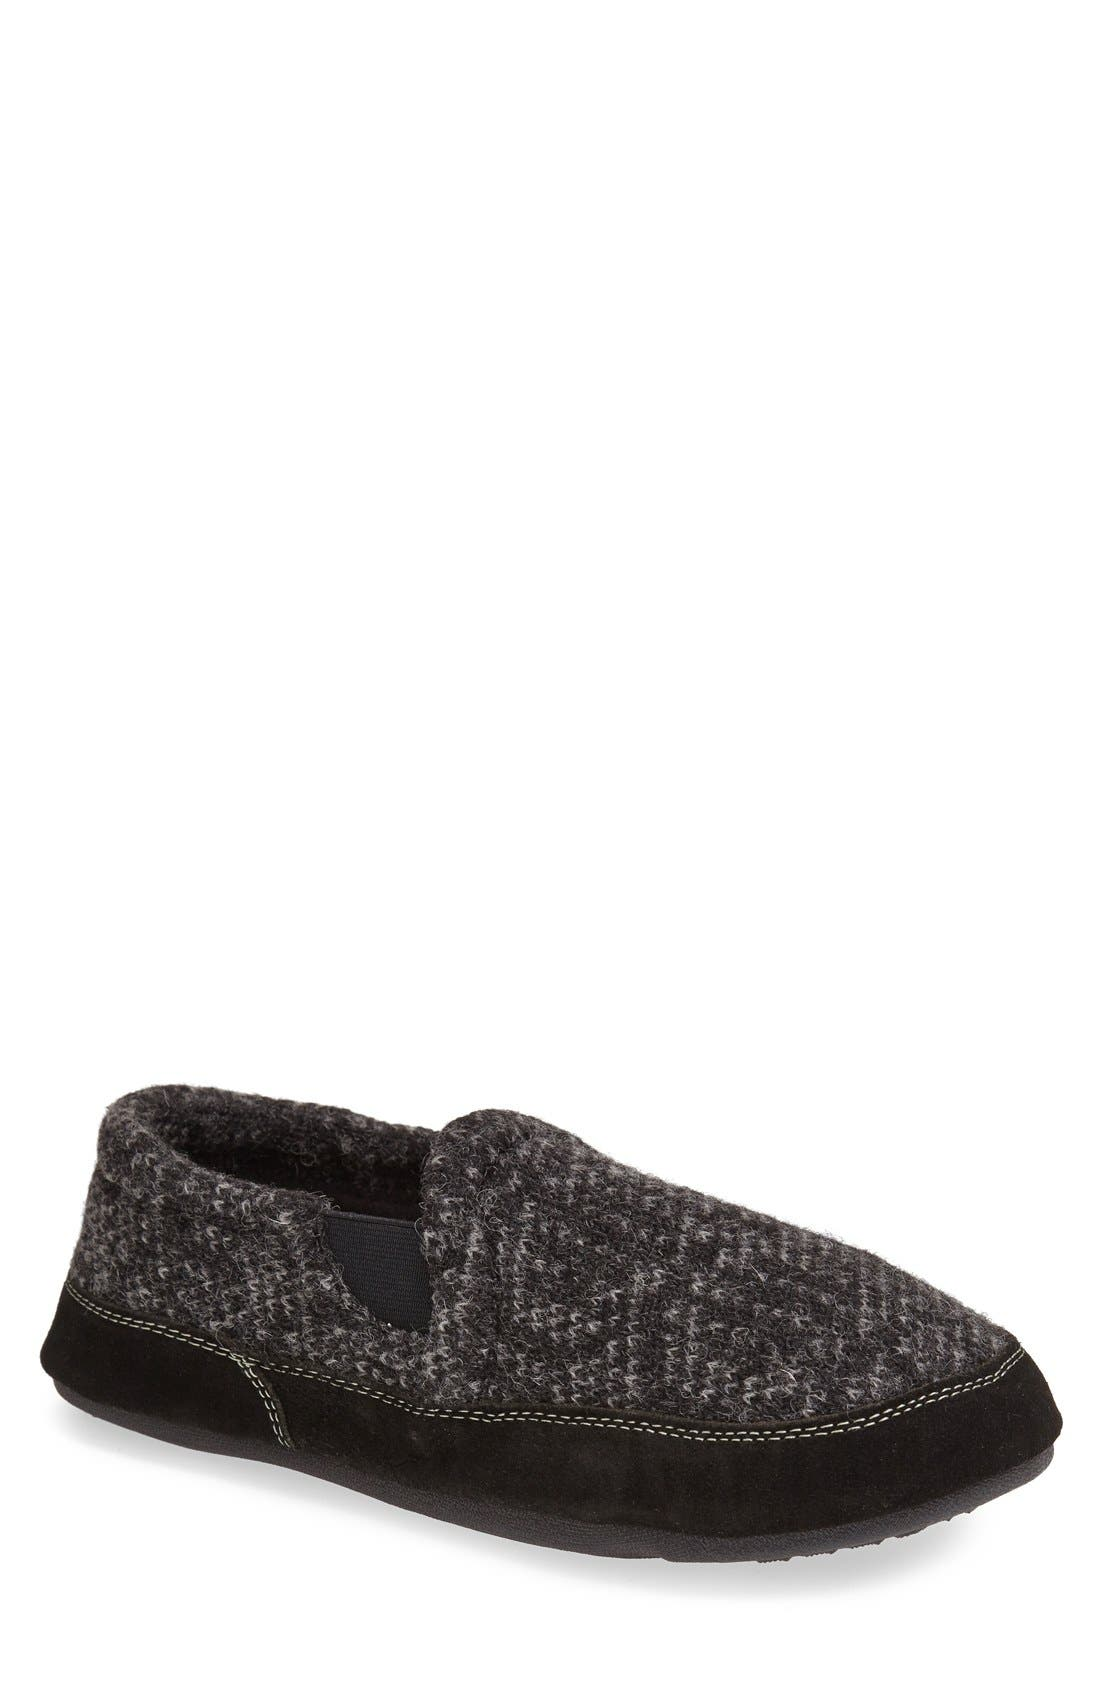 ACORN 'Fave' Slipper in Charcoal Tweed